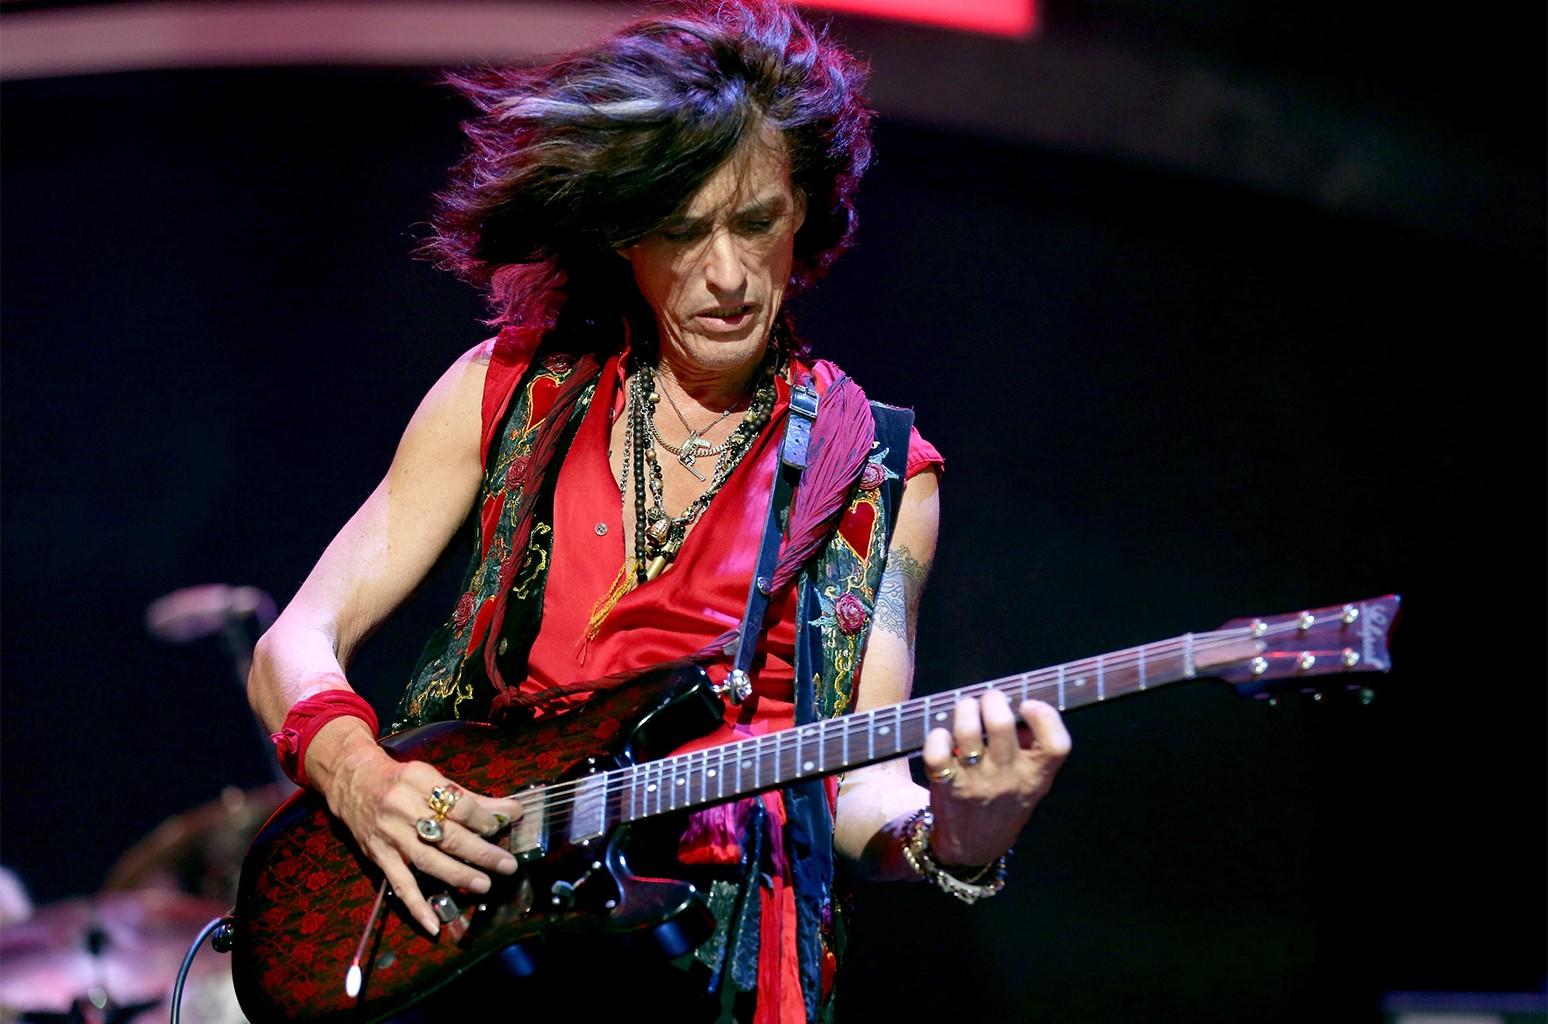 Joe Perry of Aerosmith performs onstage during the 2012 iHeartRadio Music Festival at the MGM Grand Garden Arena on Sept. 22, 2012 in Las Vegas.